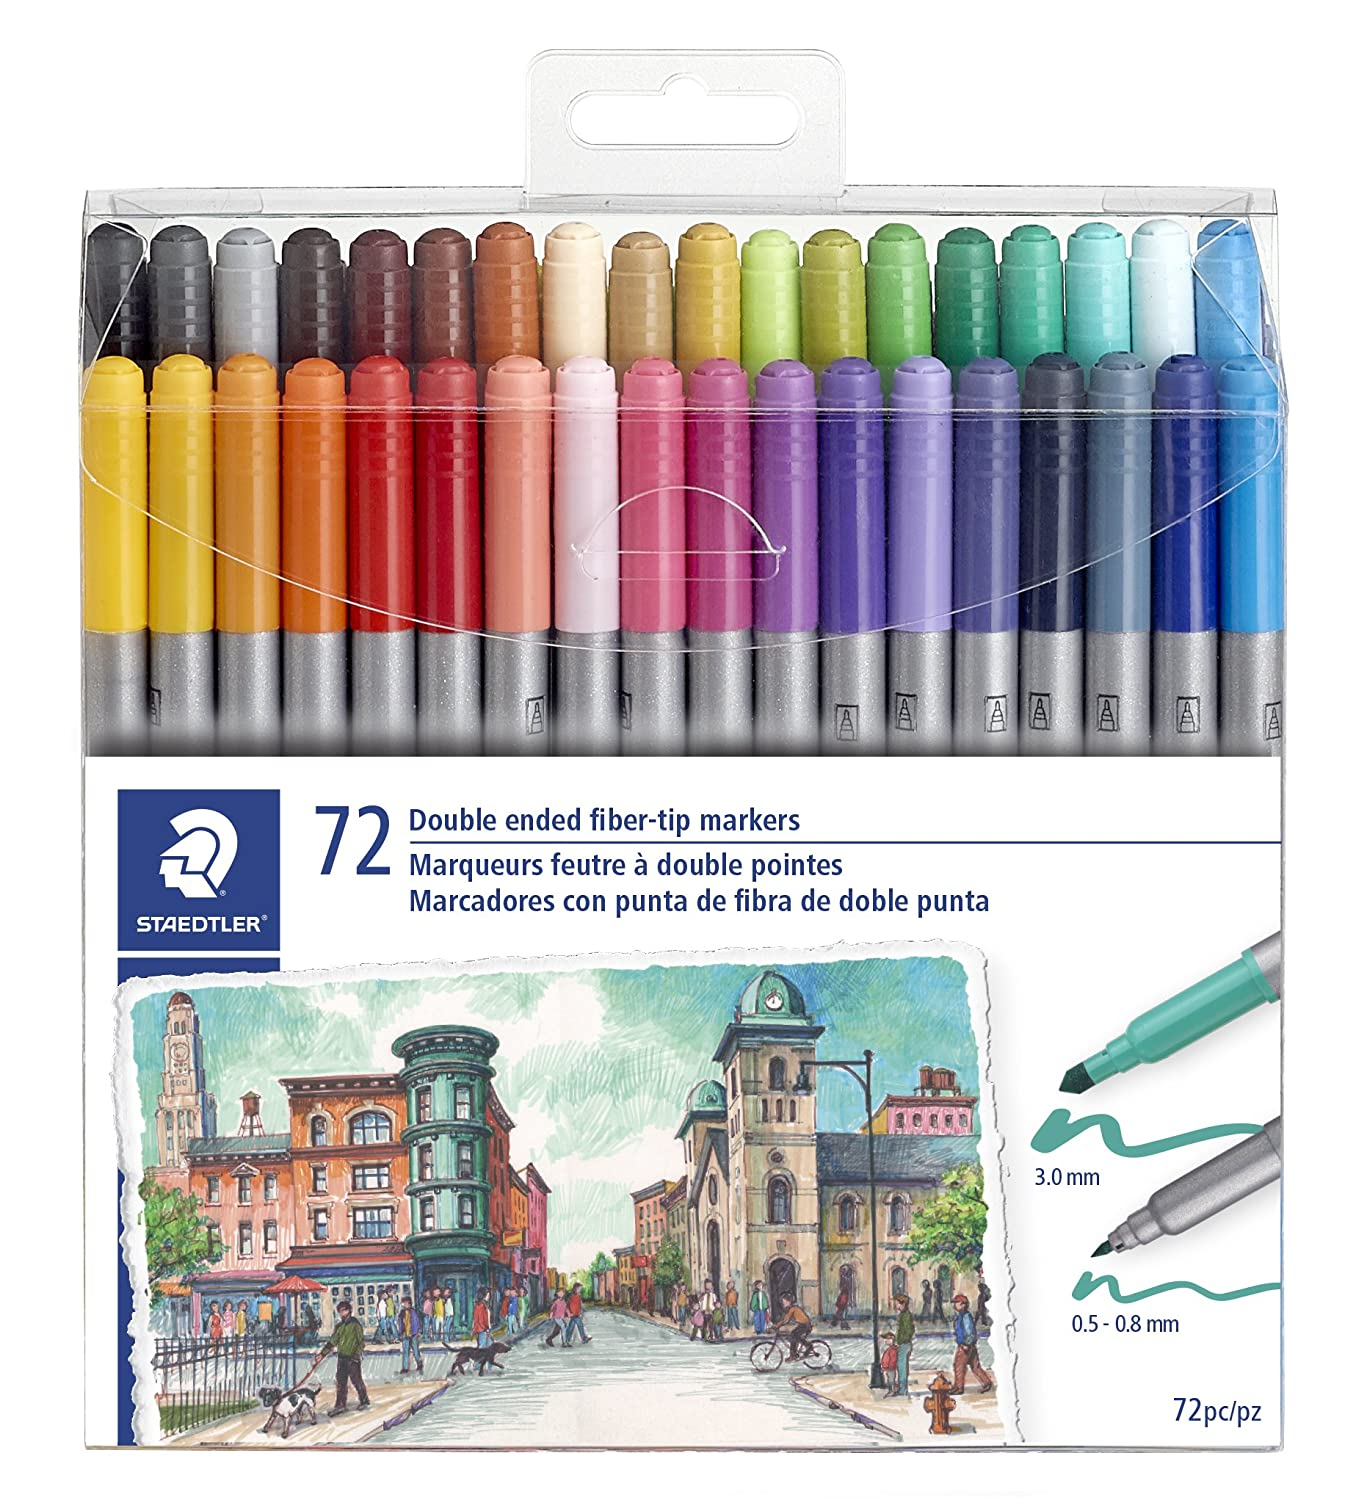 STAEDTLER double ended fiber-tip markers, for sketching, drawing, illustrations, and coloring, 36 vibrant colors, washable, 320 C36 LU Staedtler Inc.